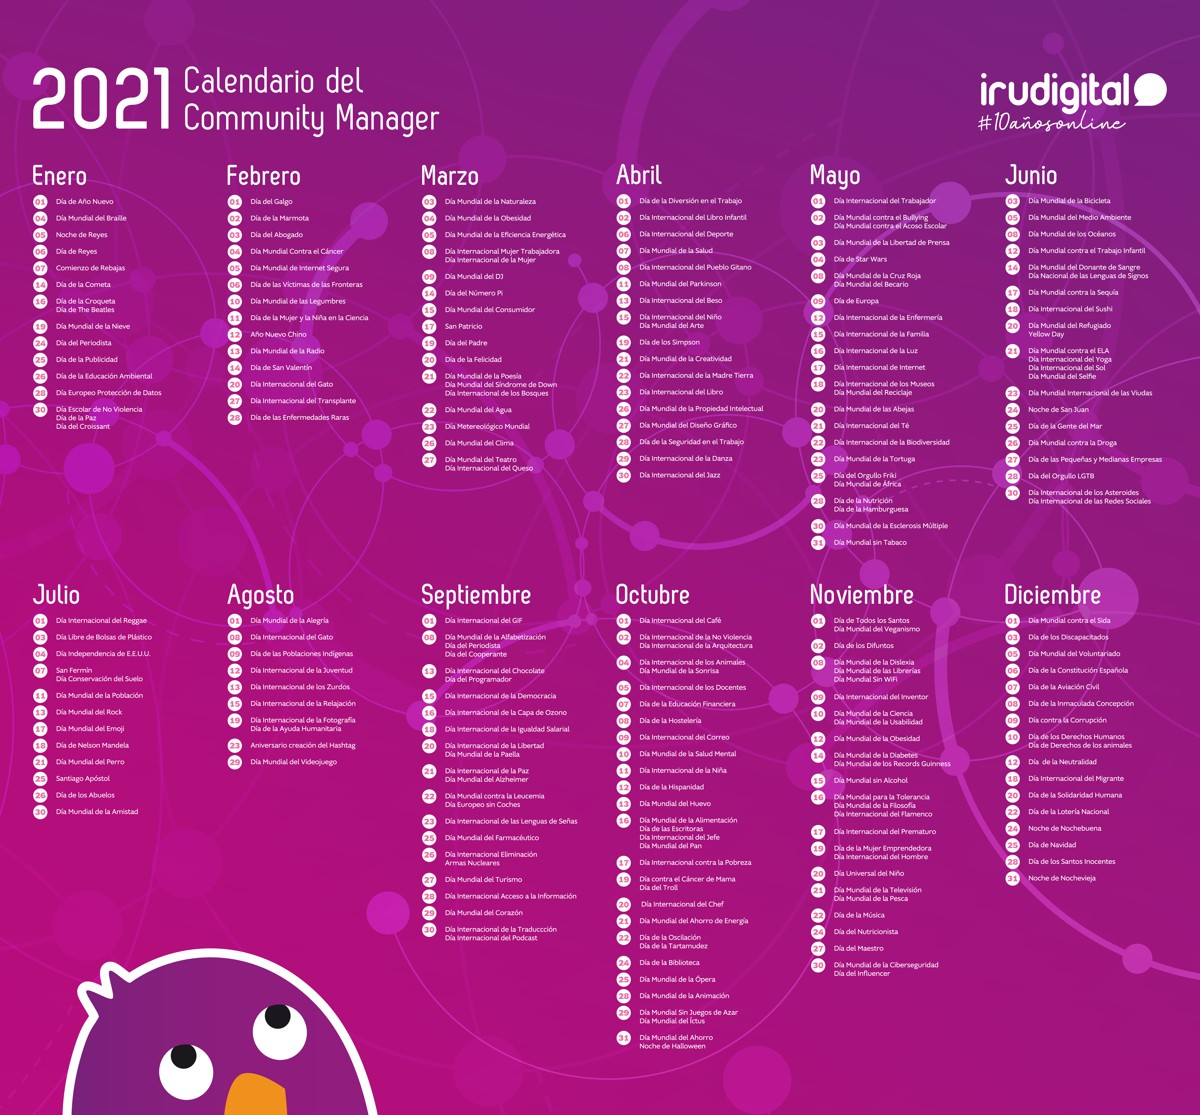 calendario del community manager 2021 de irudigital